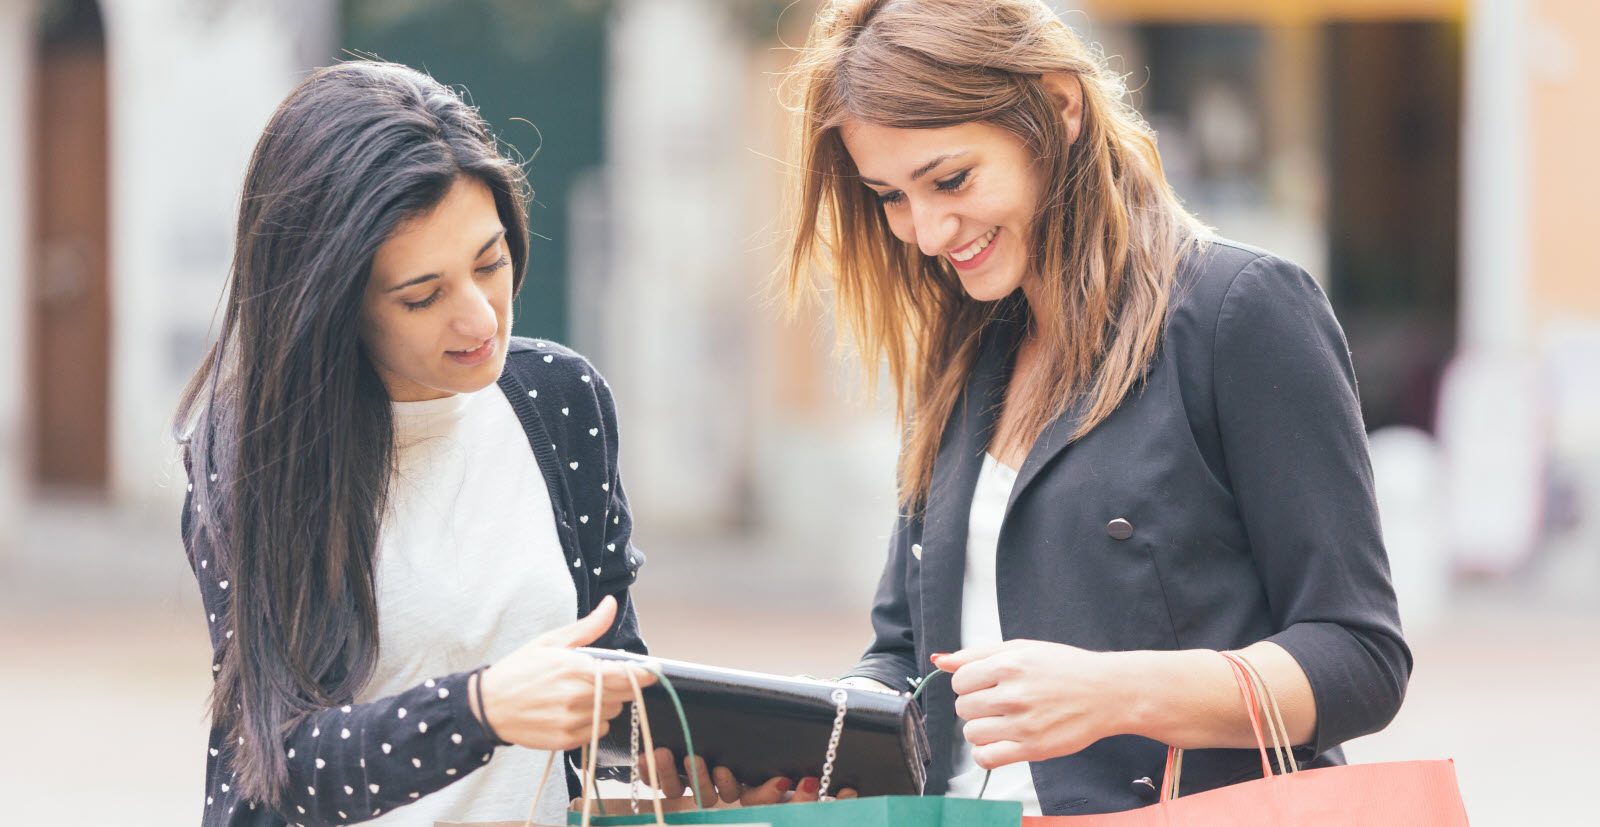 Women with Shopping Bags in the City